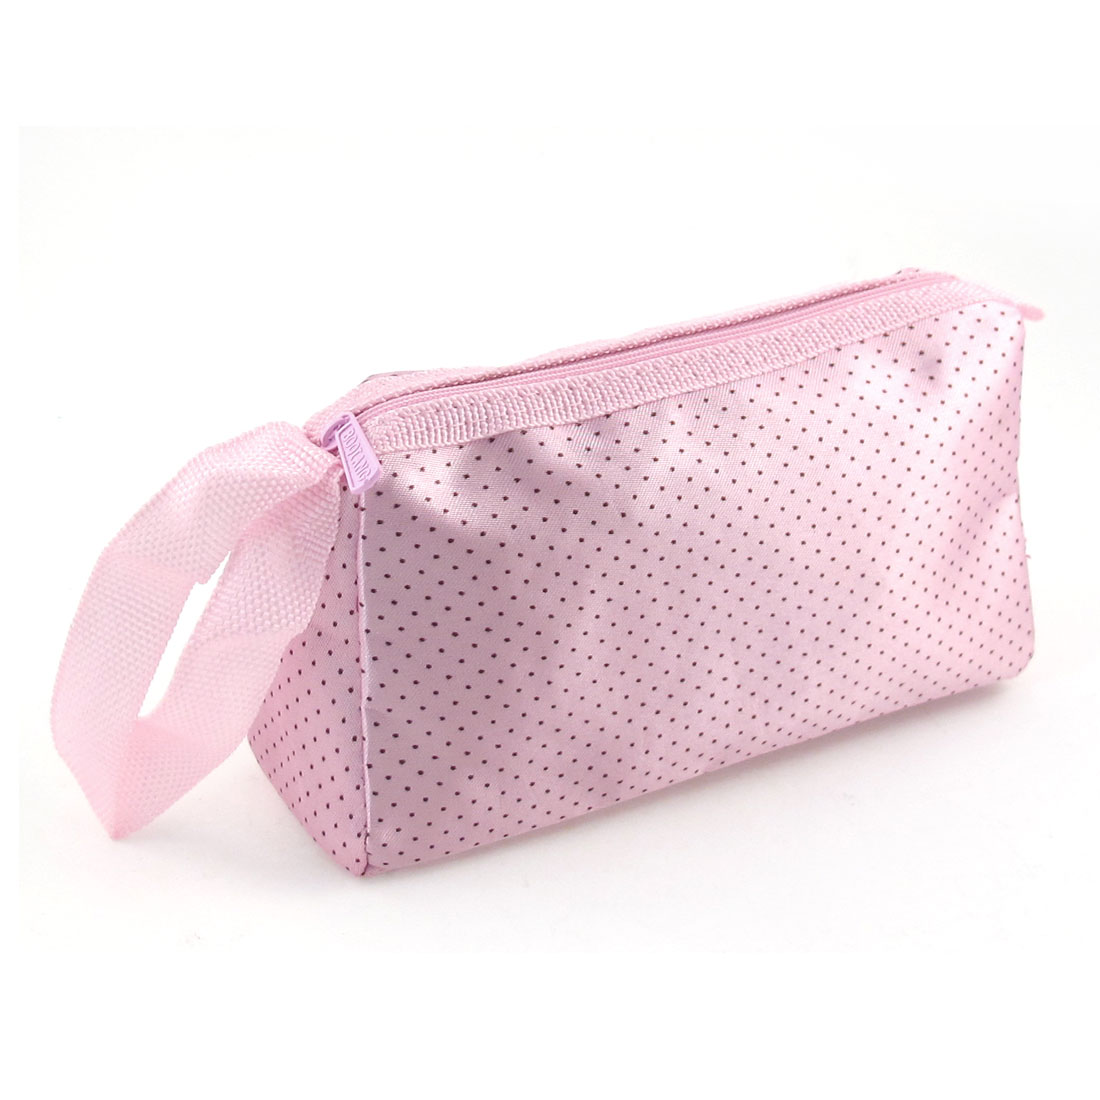 Woman Zipper Closure Black Dots Pattern Cosmetic Pouch Bag Pink w Hand Strap